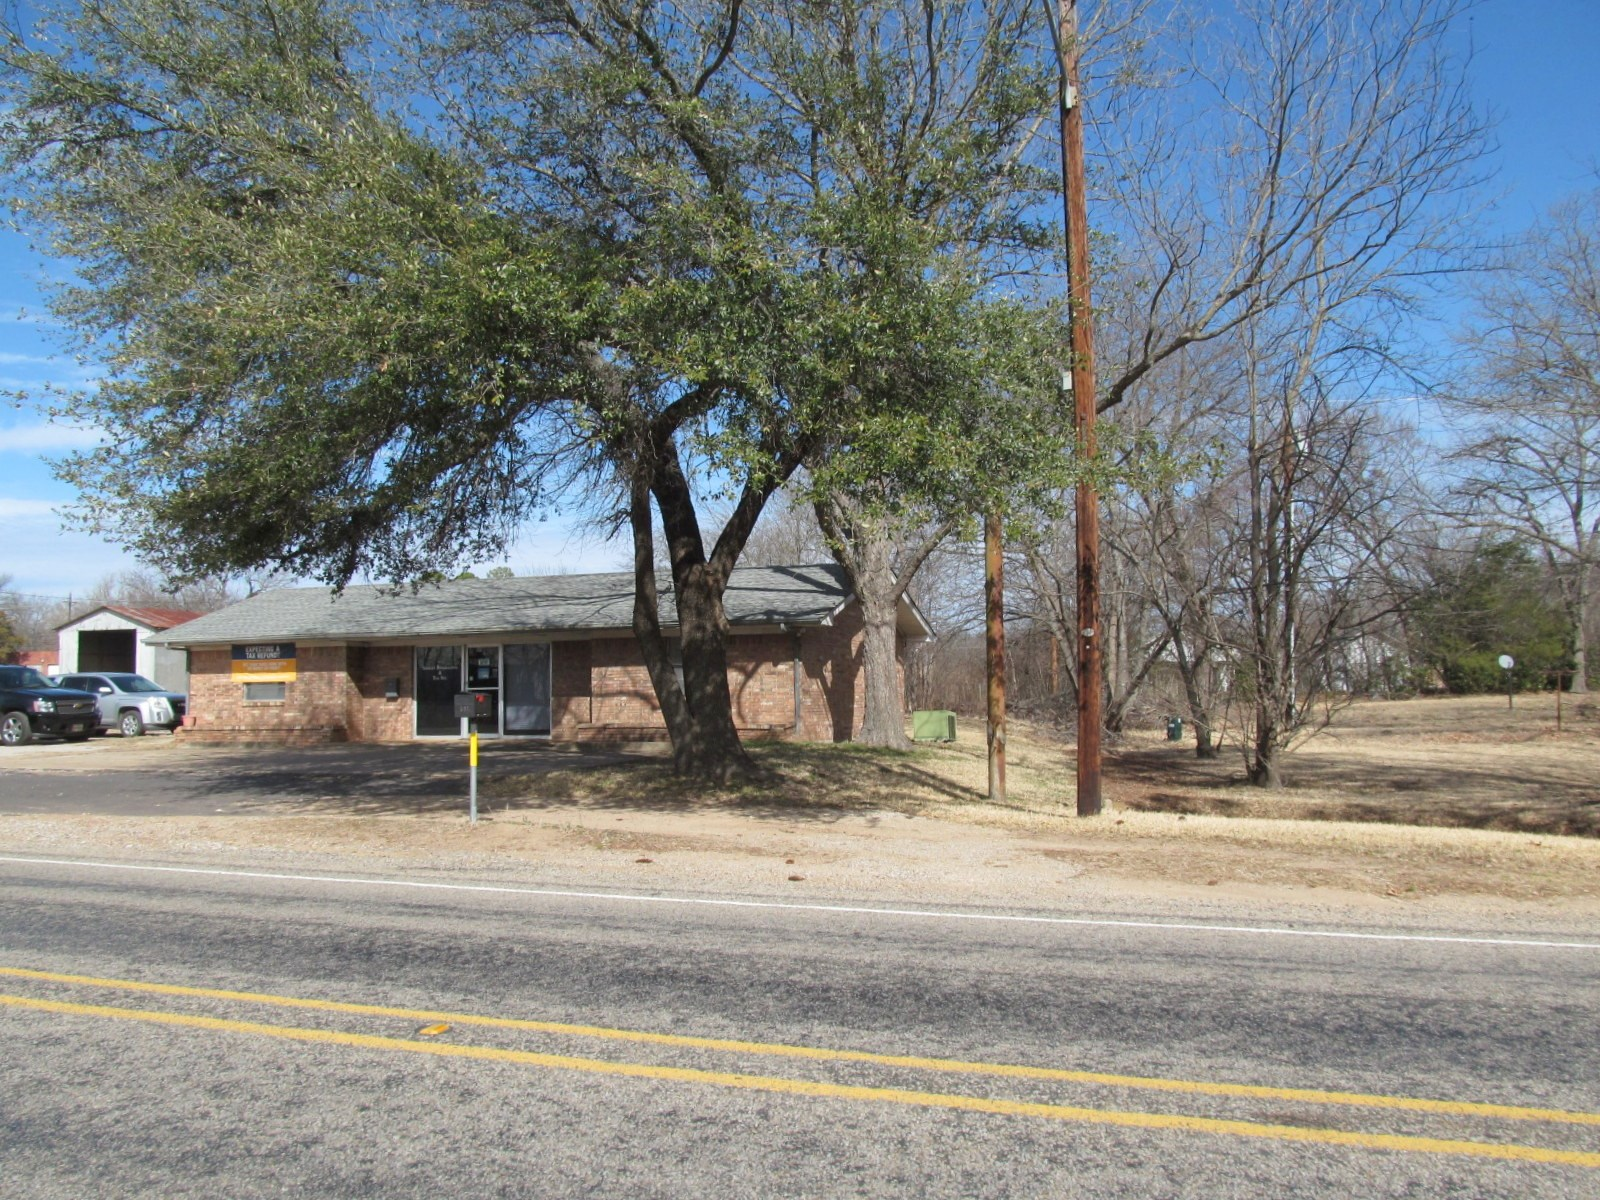 4 COMMERCIAL BUILDINGS FOR SALE - EAST TEXAS - WOOD COUNTY